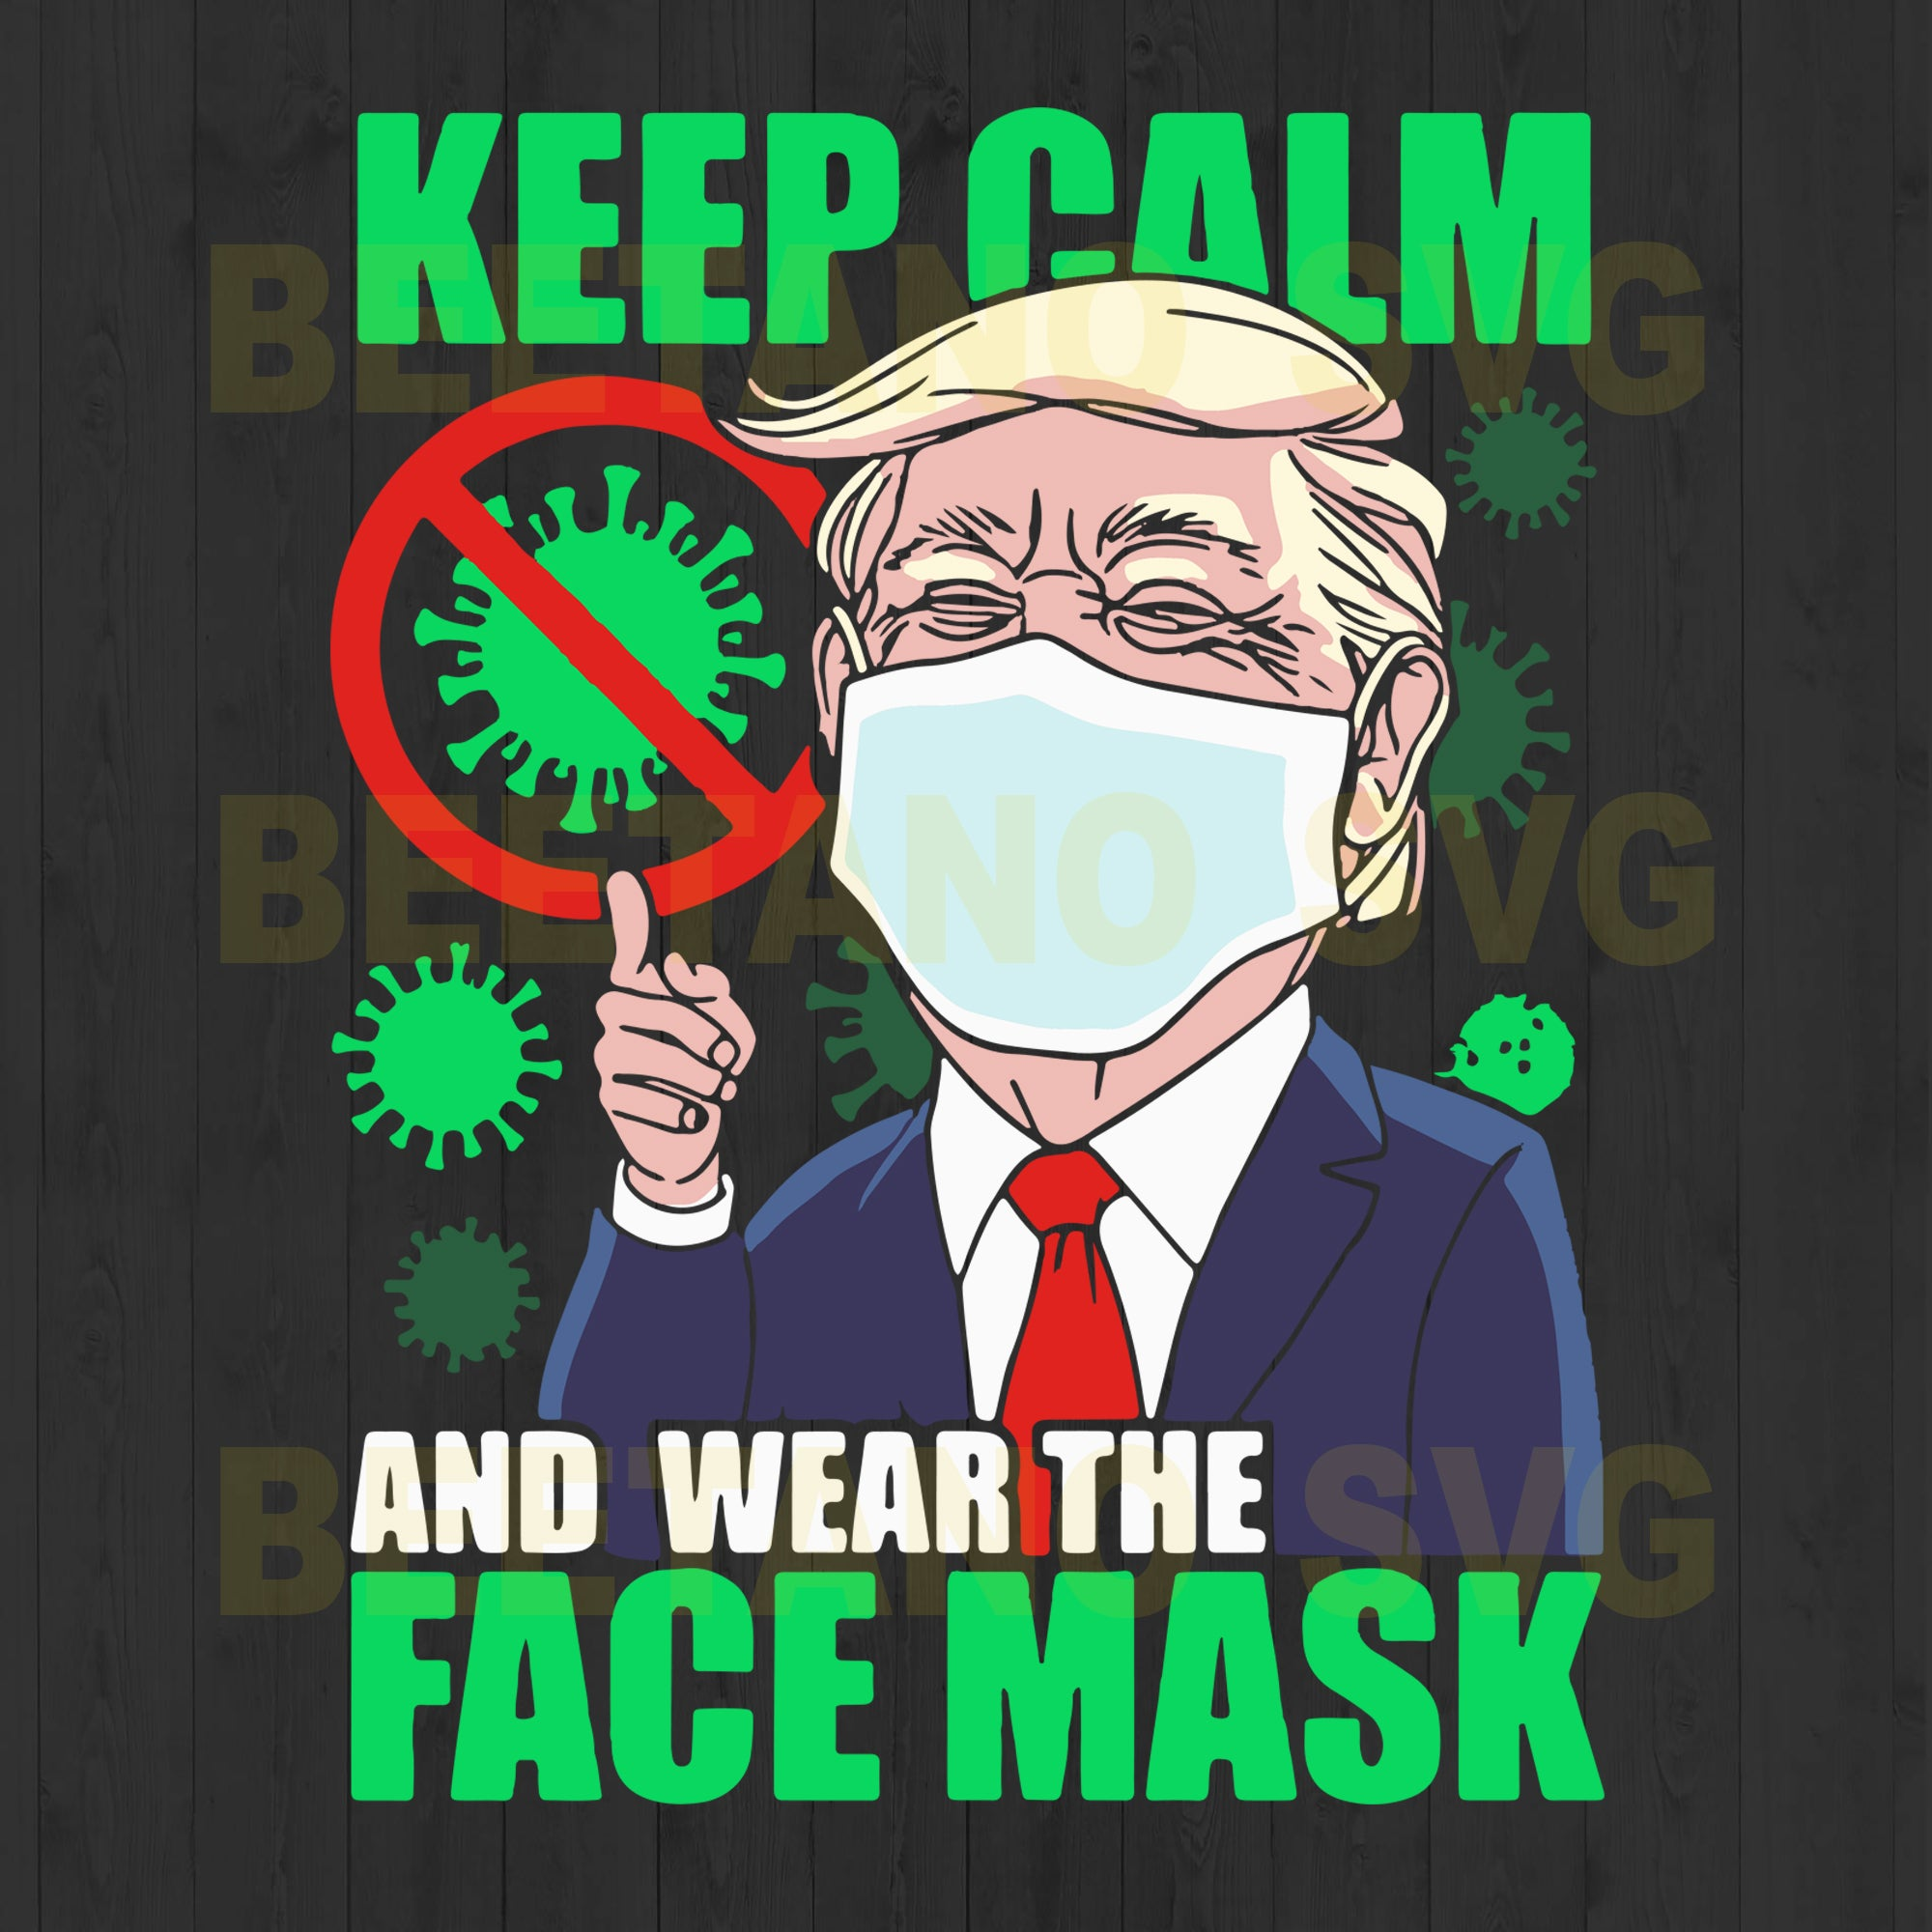 Trump Keep Calm And Wear The Face Mask Svg Files, Keep Calm And Wear The Face Mask Svg